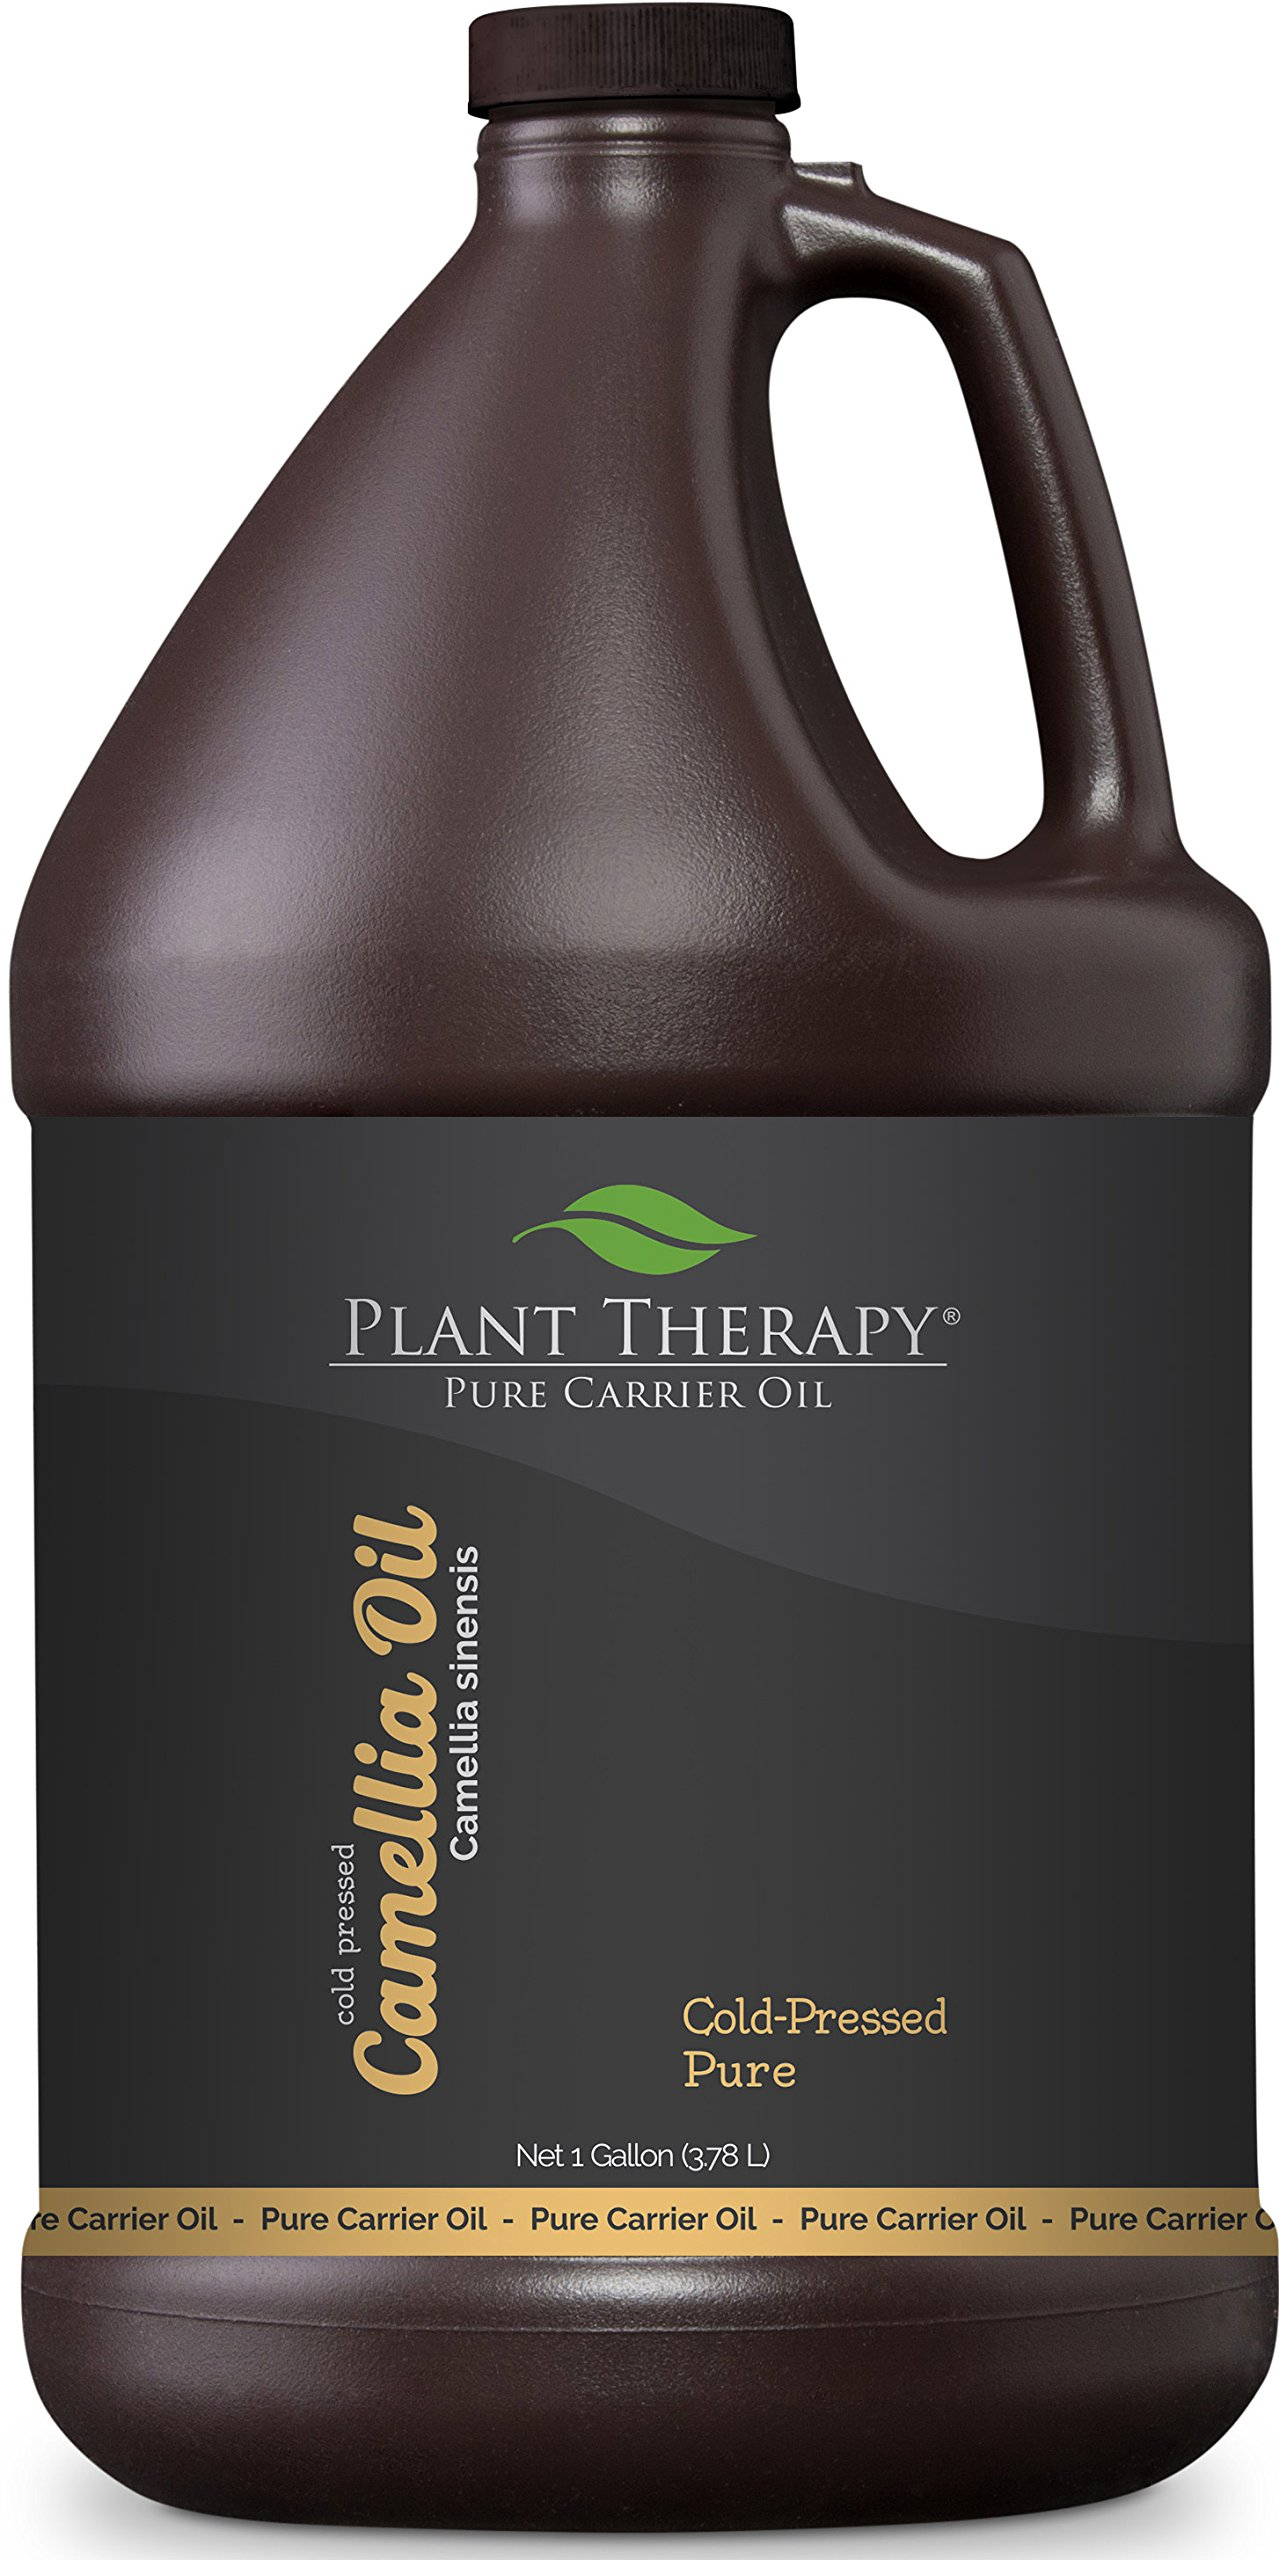 Plant Therapy Camellia Seed Carrier Oil 1 Gal. A Base Oil for Aromatherapy, Essential Oil or Massage Use by Plant Therapy